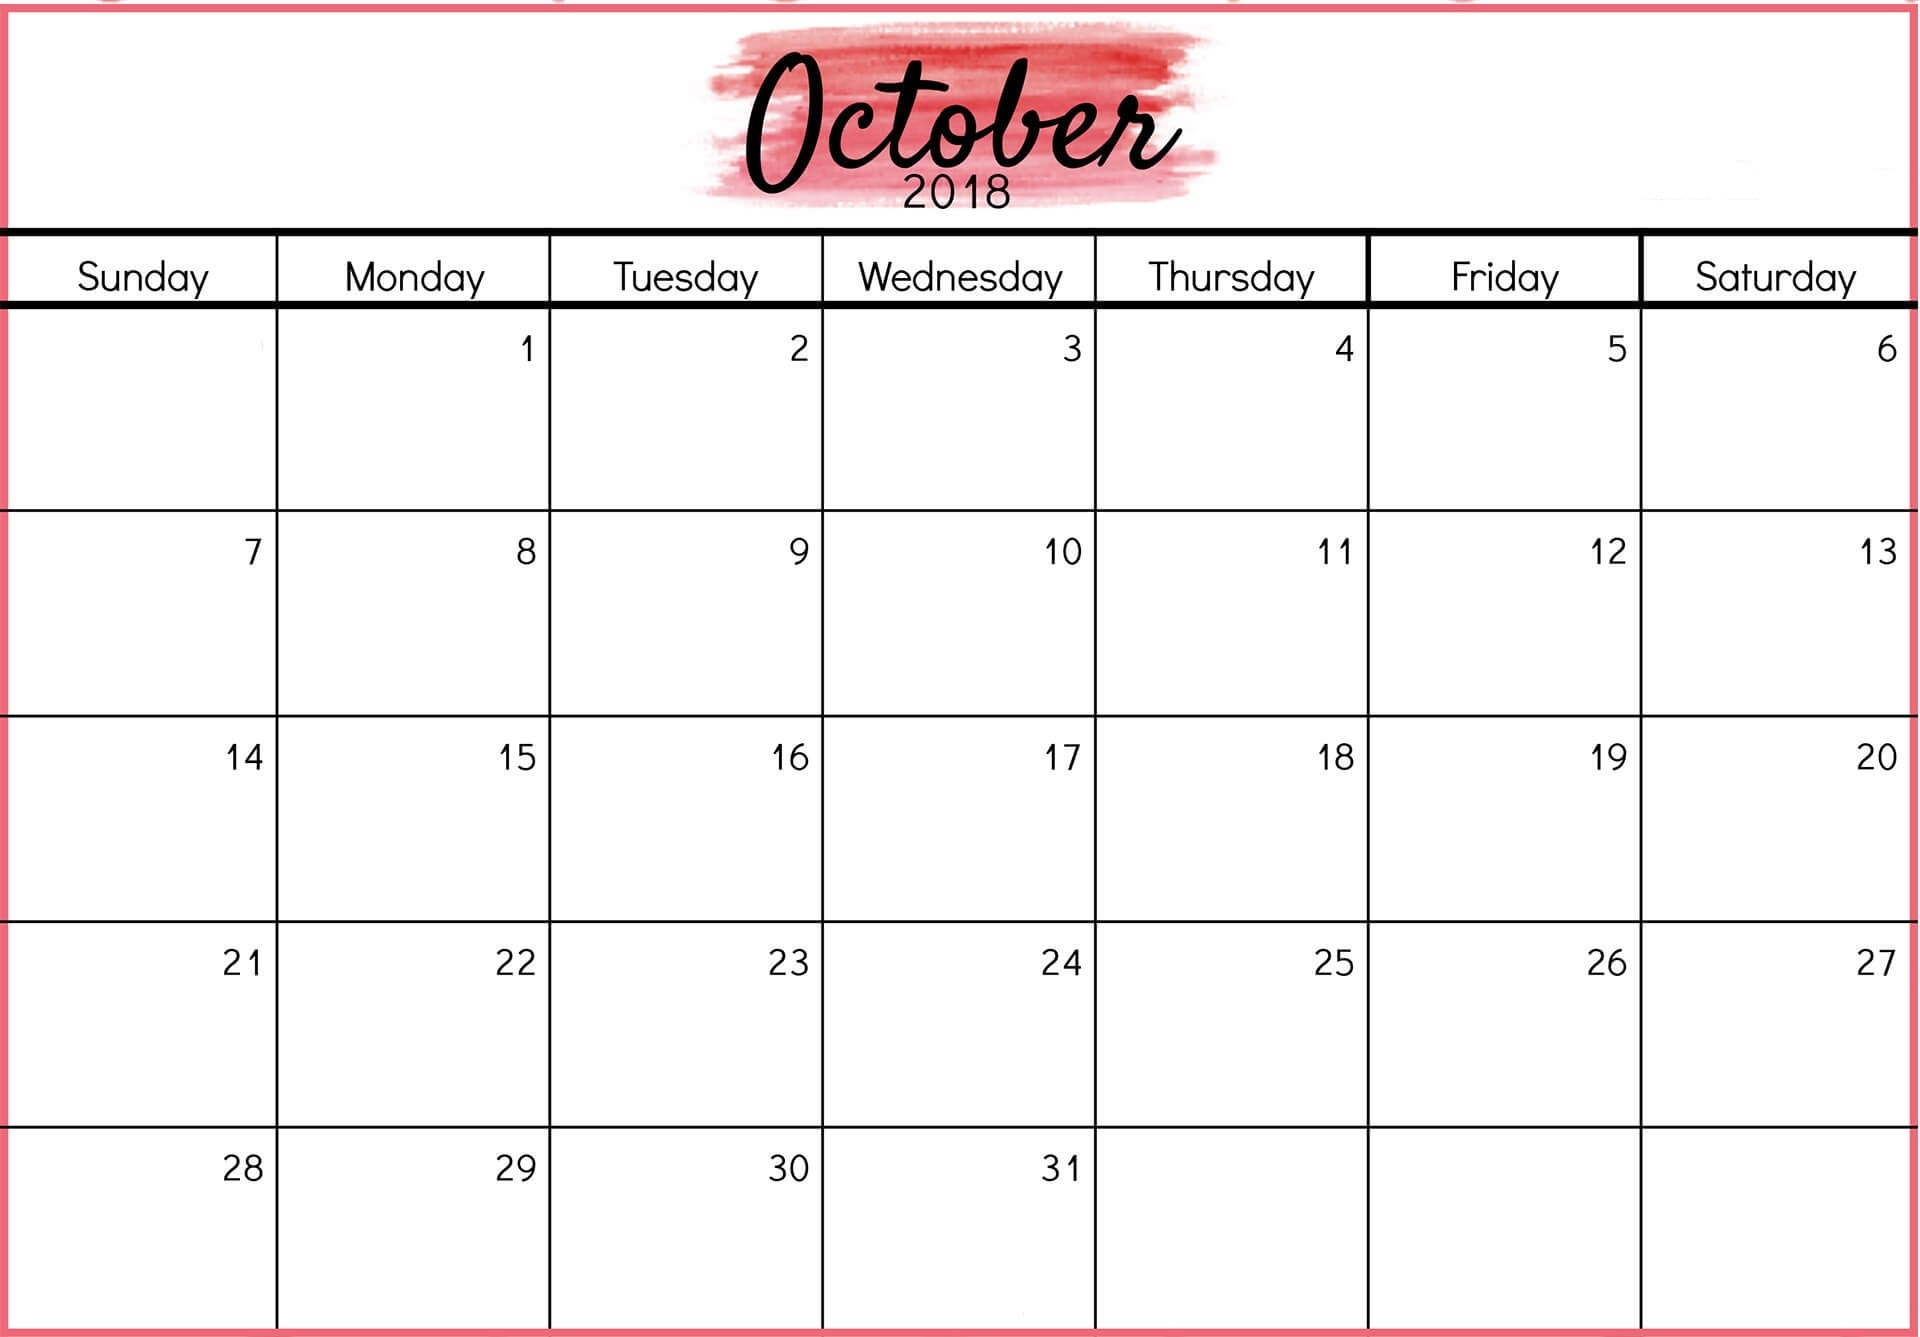 october 2018 calendar printable with holidays printable calendar Printable October 2018 Calendar erdferdf